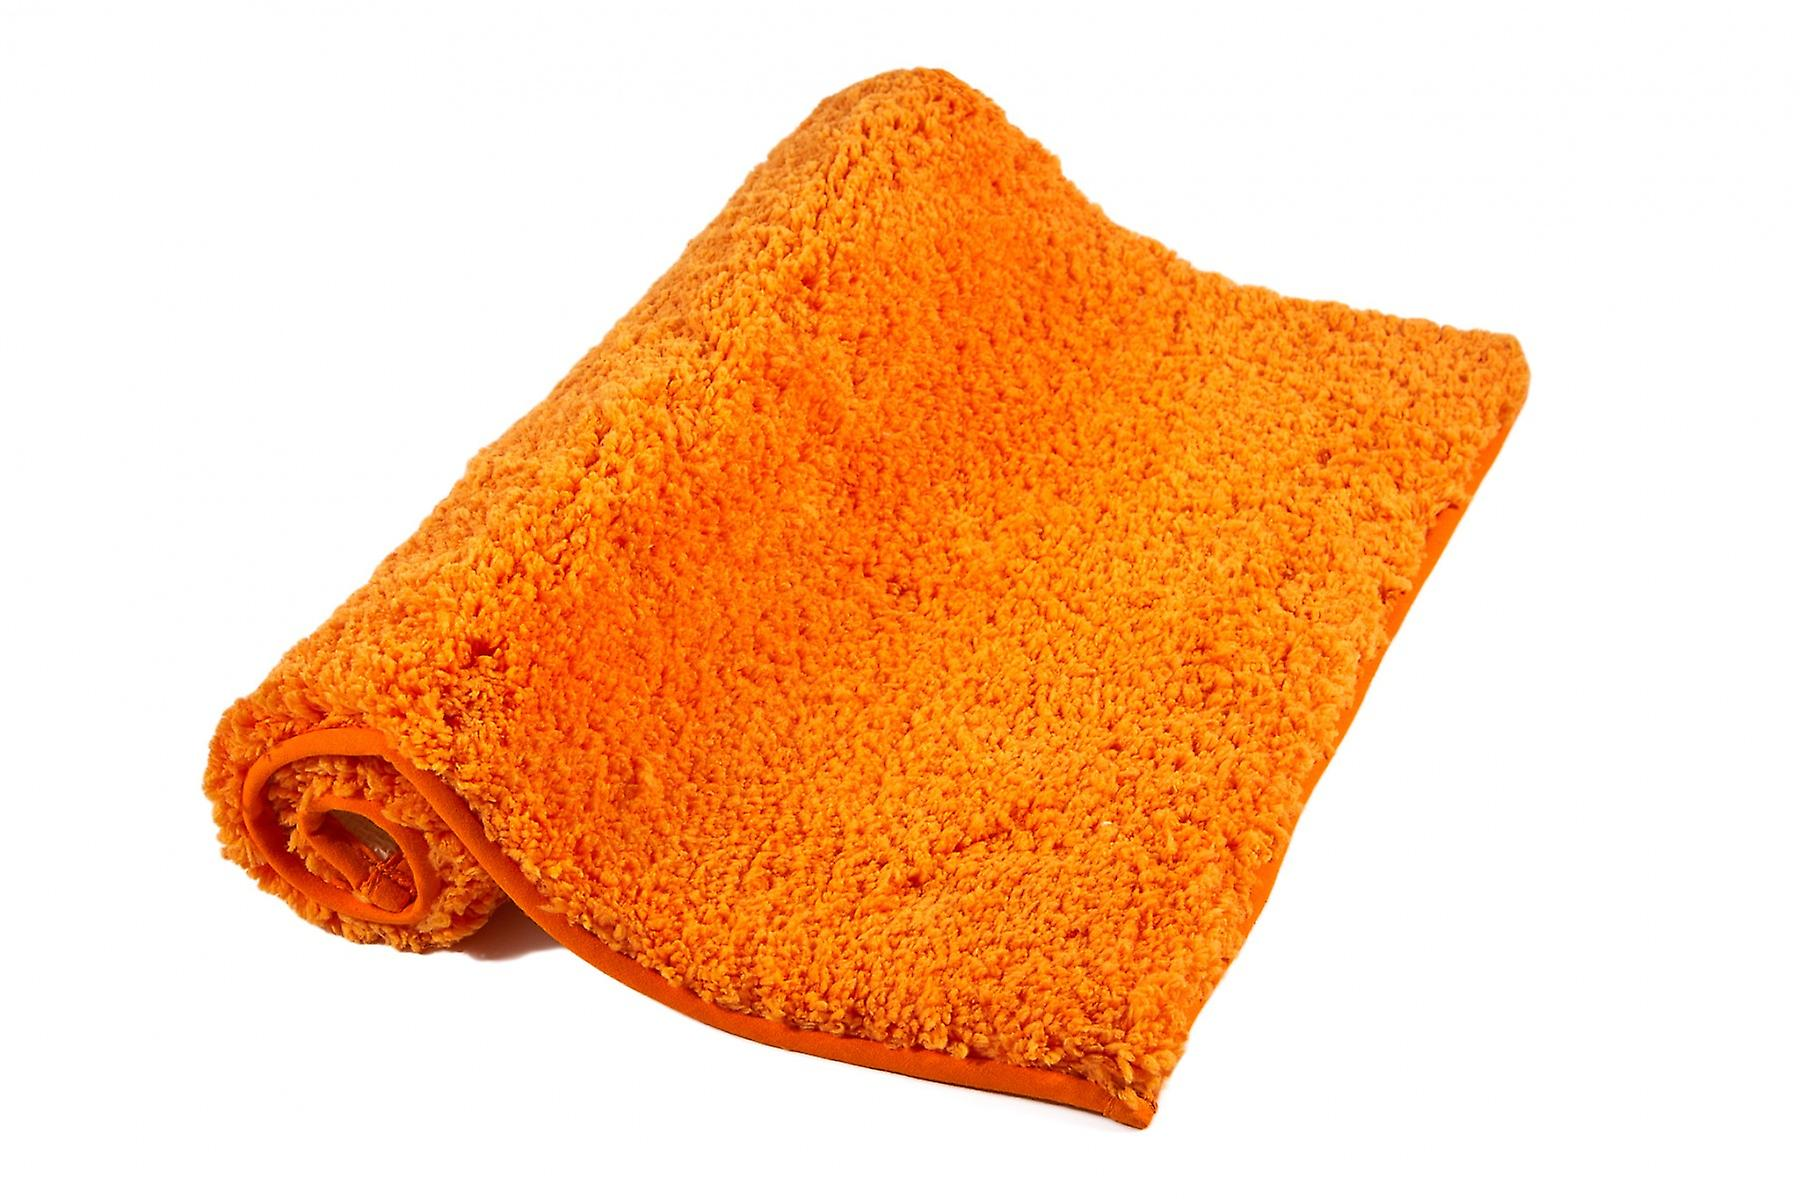 Heine home 45x50cm Orange Microfiber bath mat